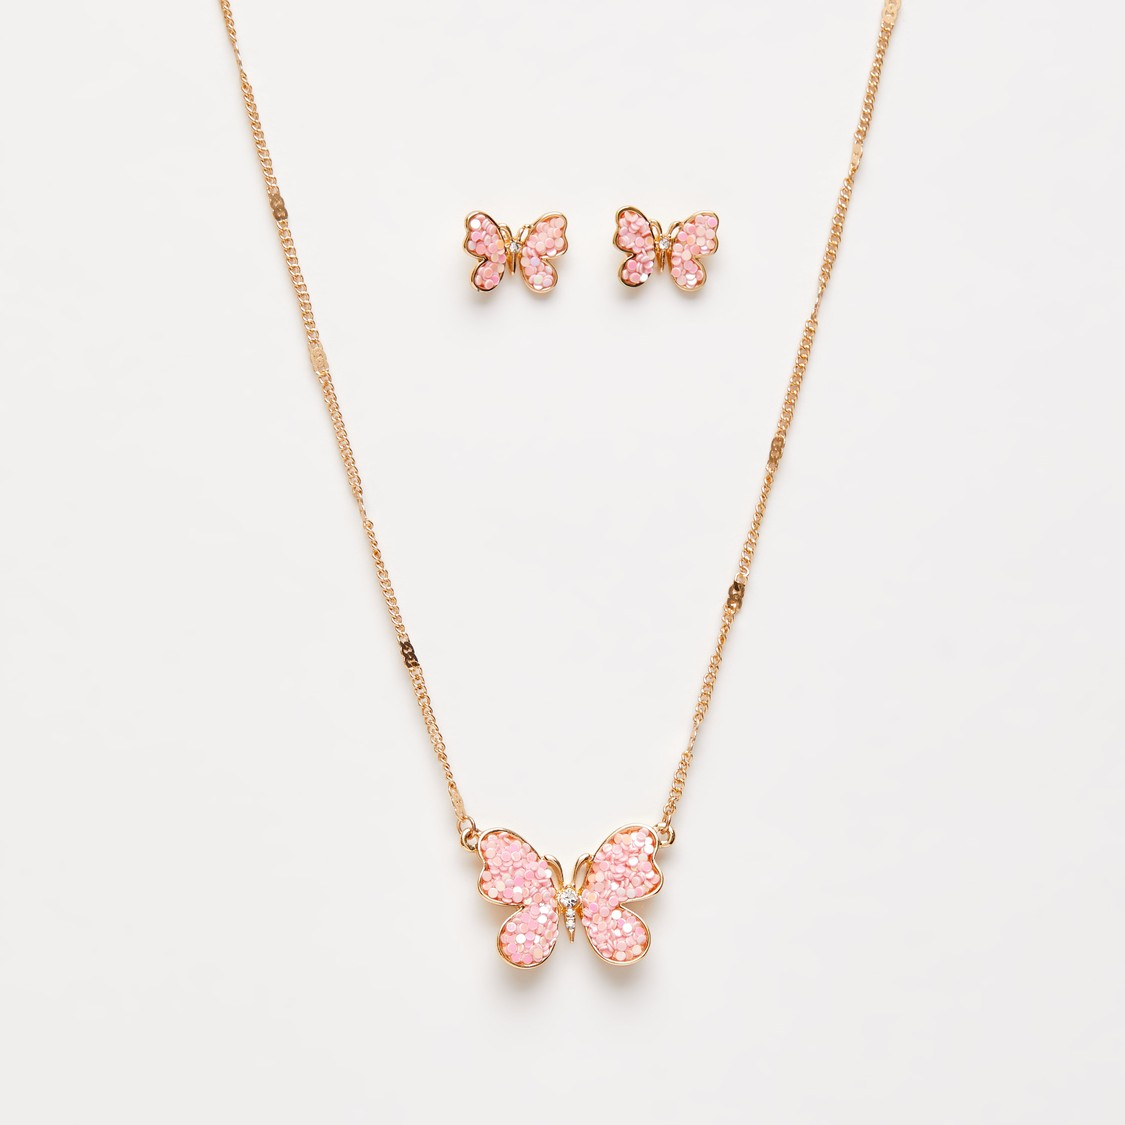 Necklace with Butterfly Shaped Pendant and Stud Earrings Set